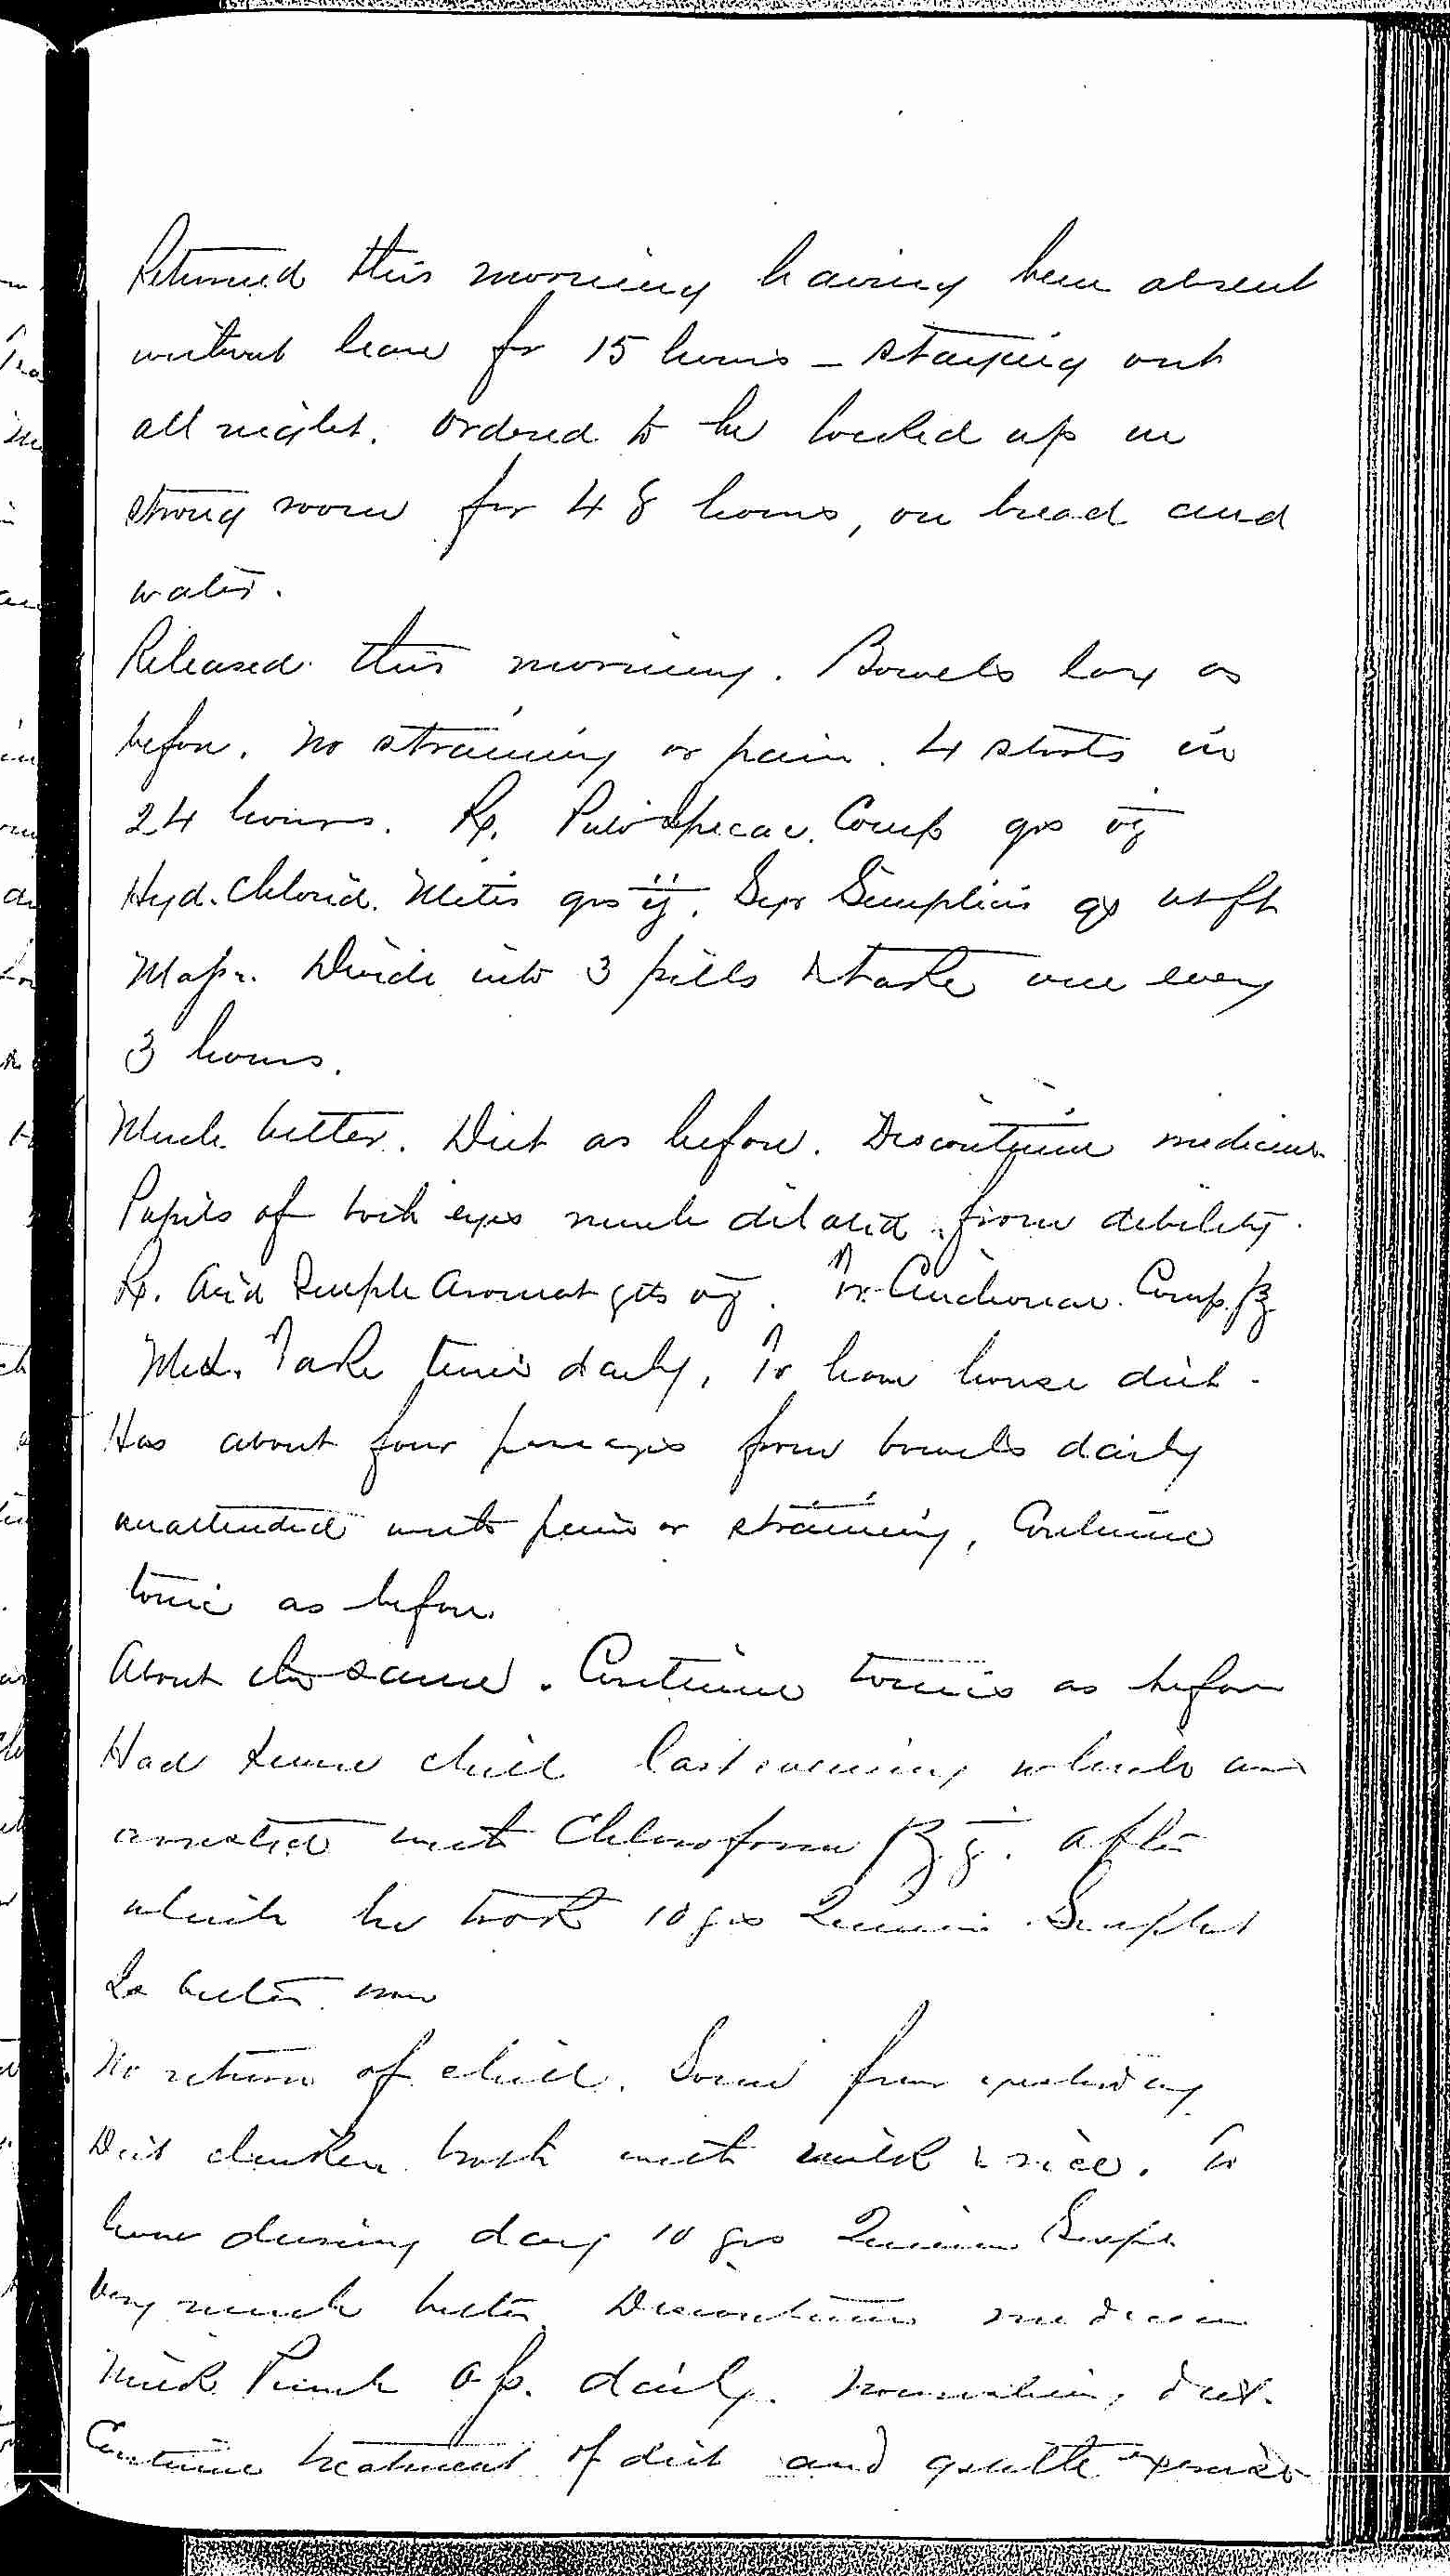 Entry for Edward Stevens (page 3 of 5) in the log Hospital Tickets and Case Papers - Naval Hospital - Washington, D.C. - 1868-69